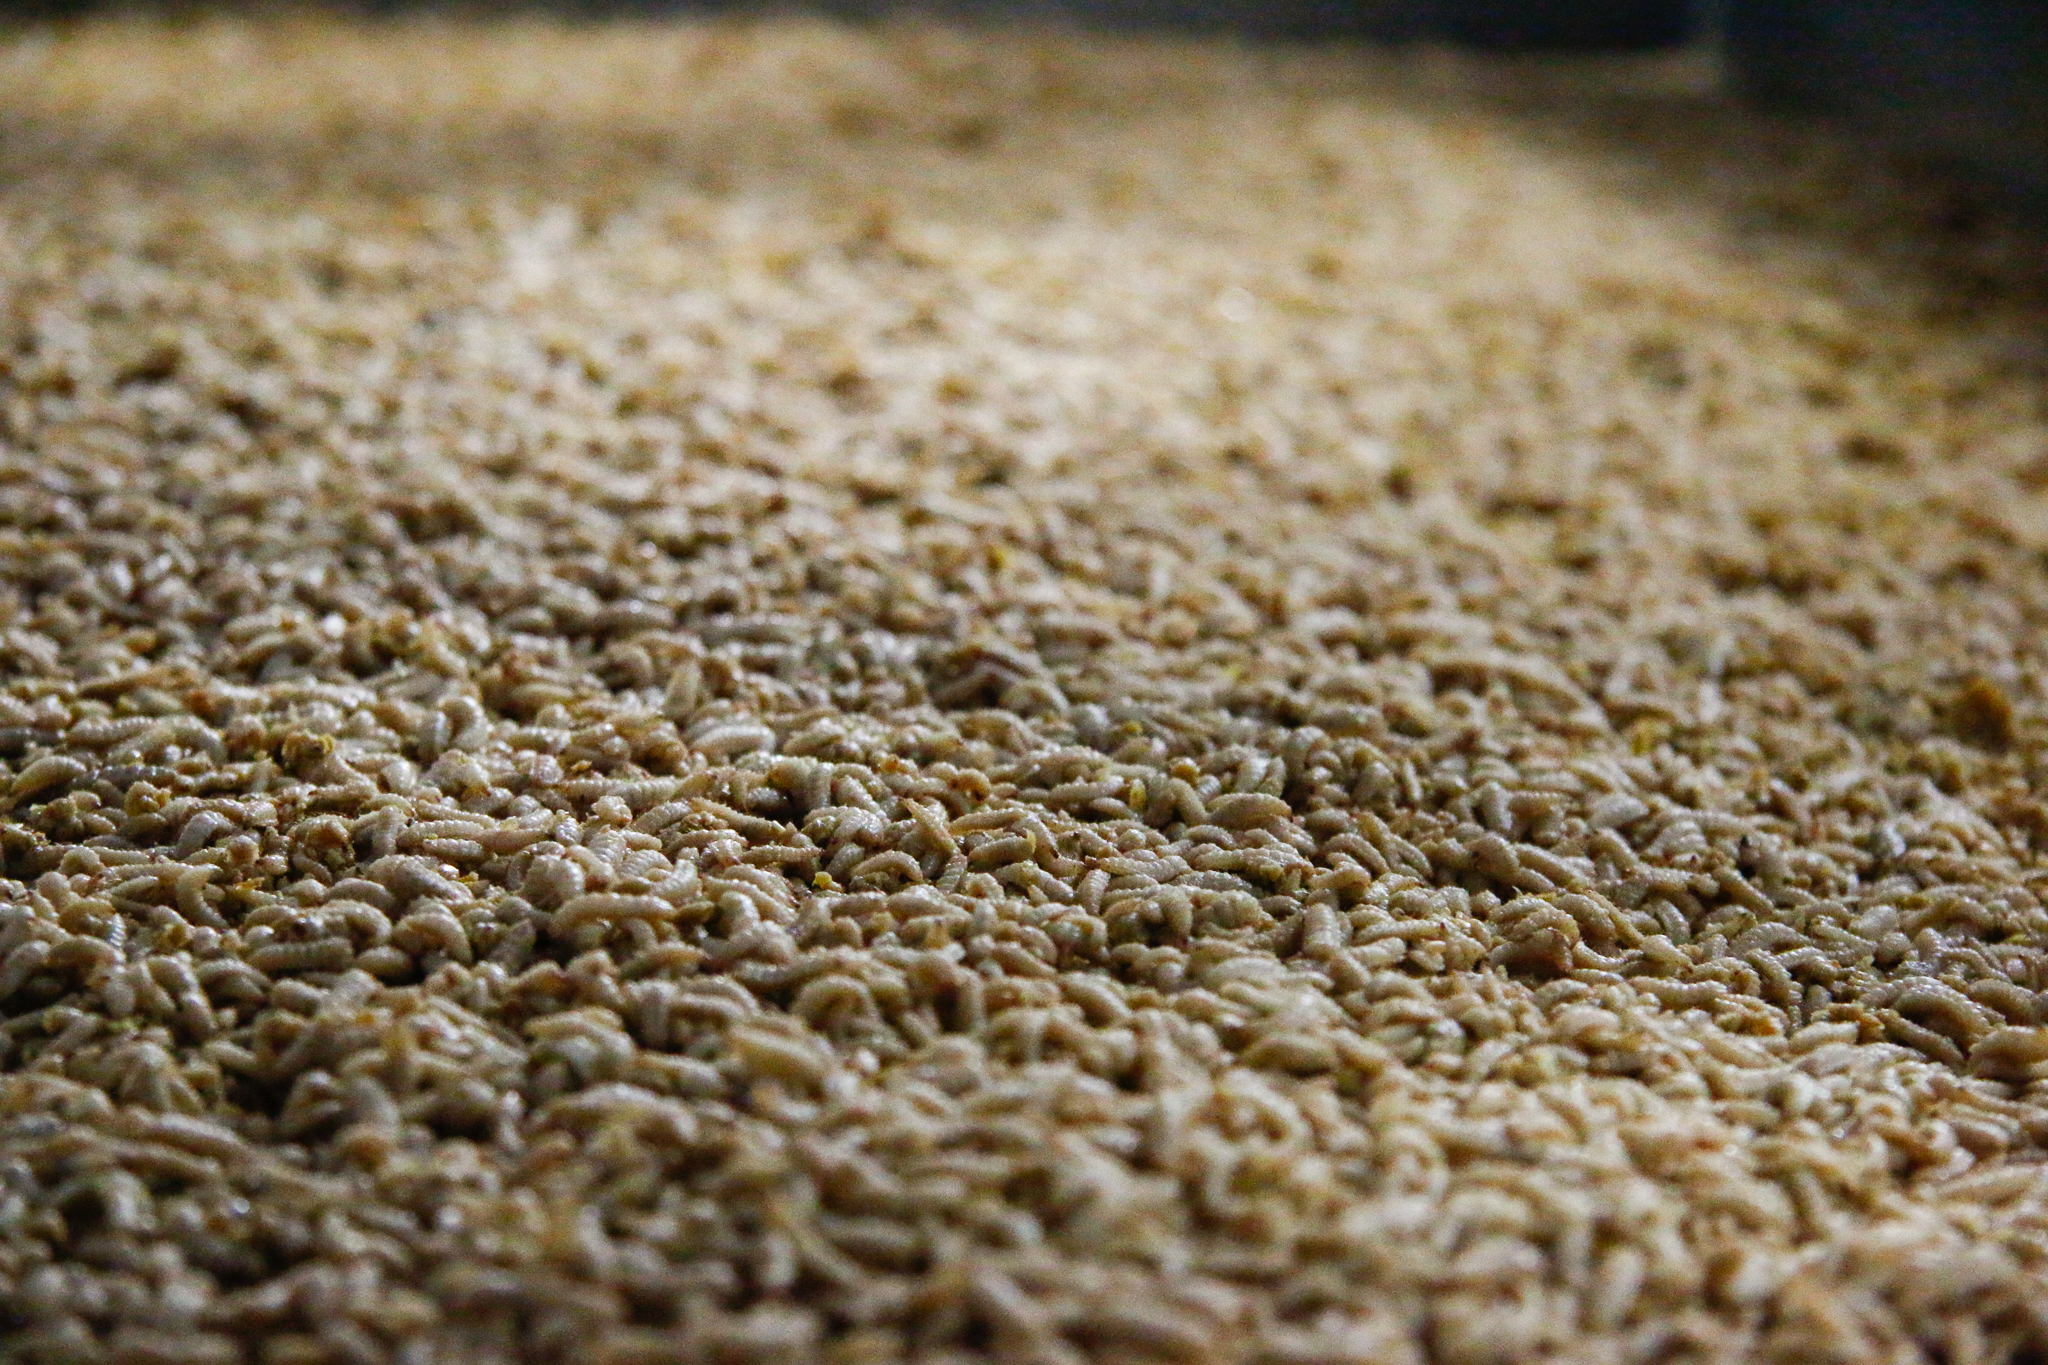 Millions of larvae at the large-scale EnviroFlight factory are fed on a steady diet of cookie meal—pre-consumer bakery residue that is dried so that it won't spoil.